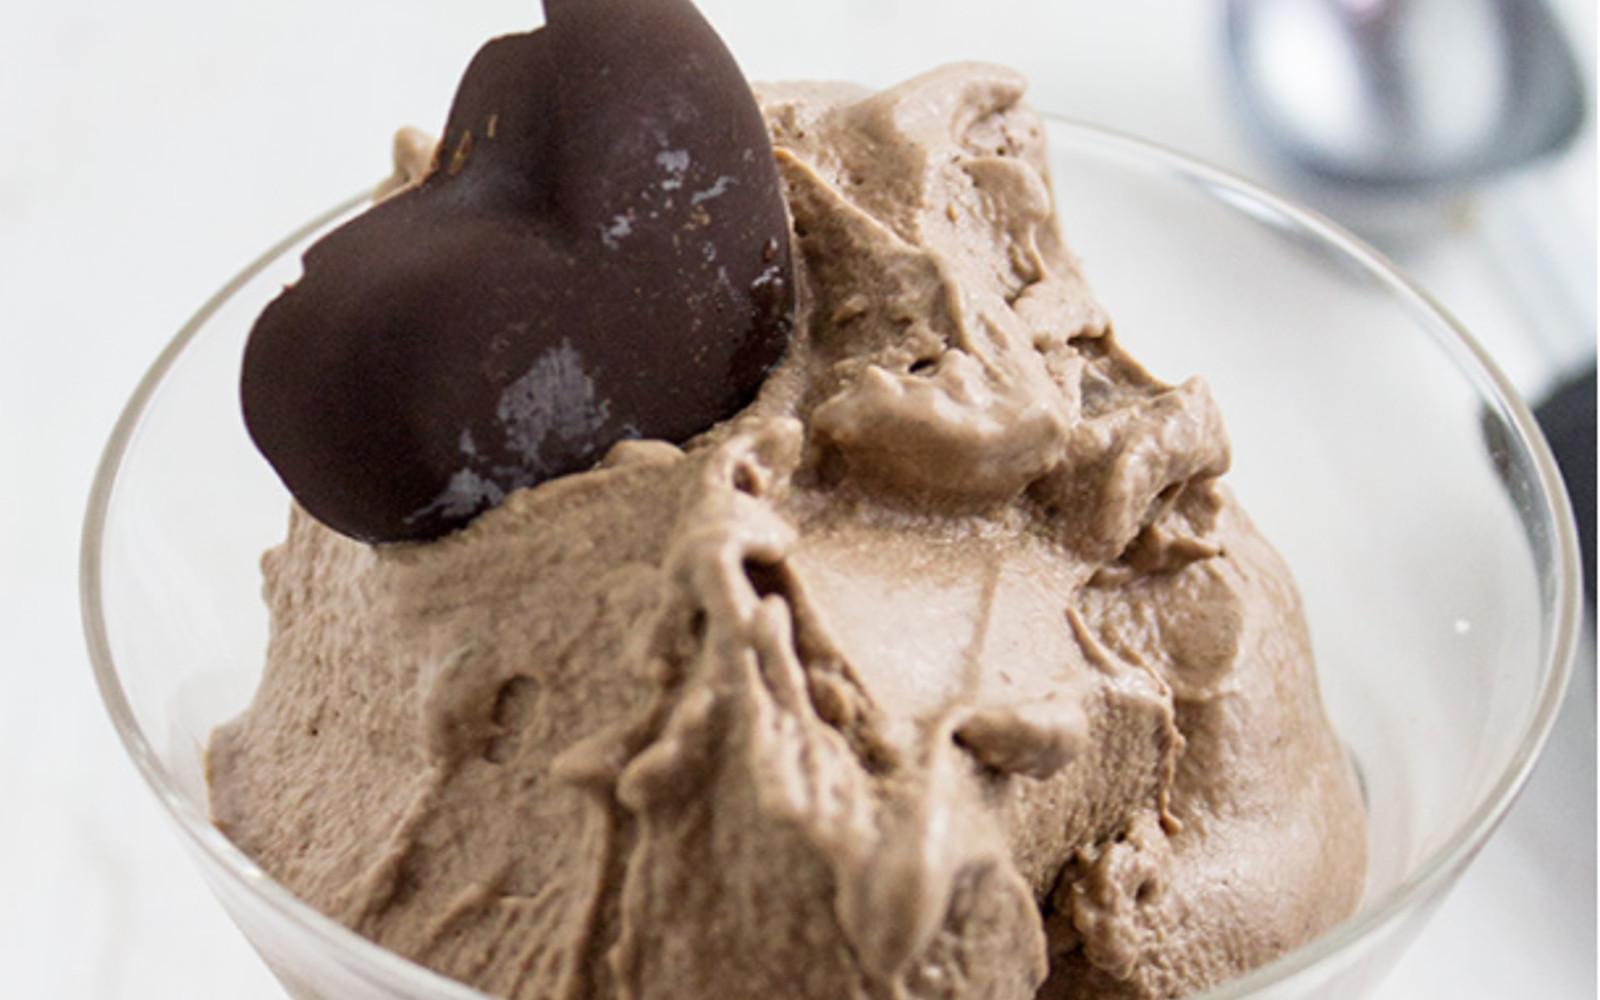 Vegan Paleo Chocolate Ice Cream with chocolate topping